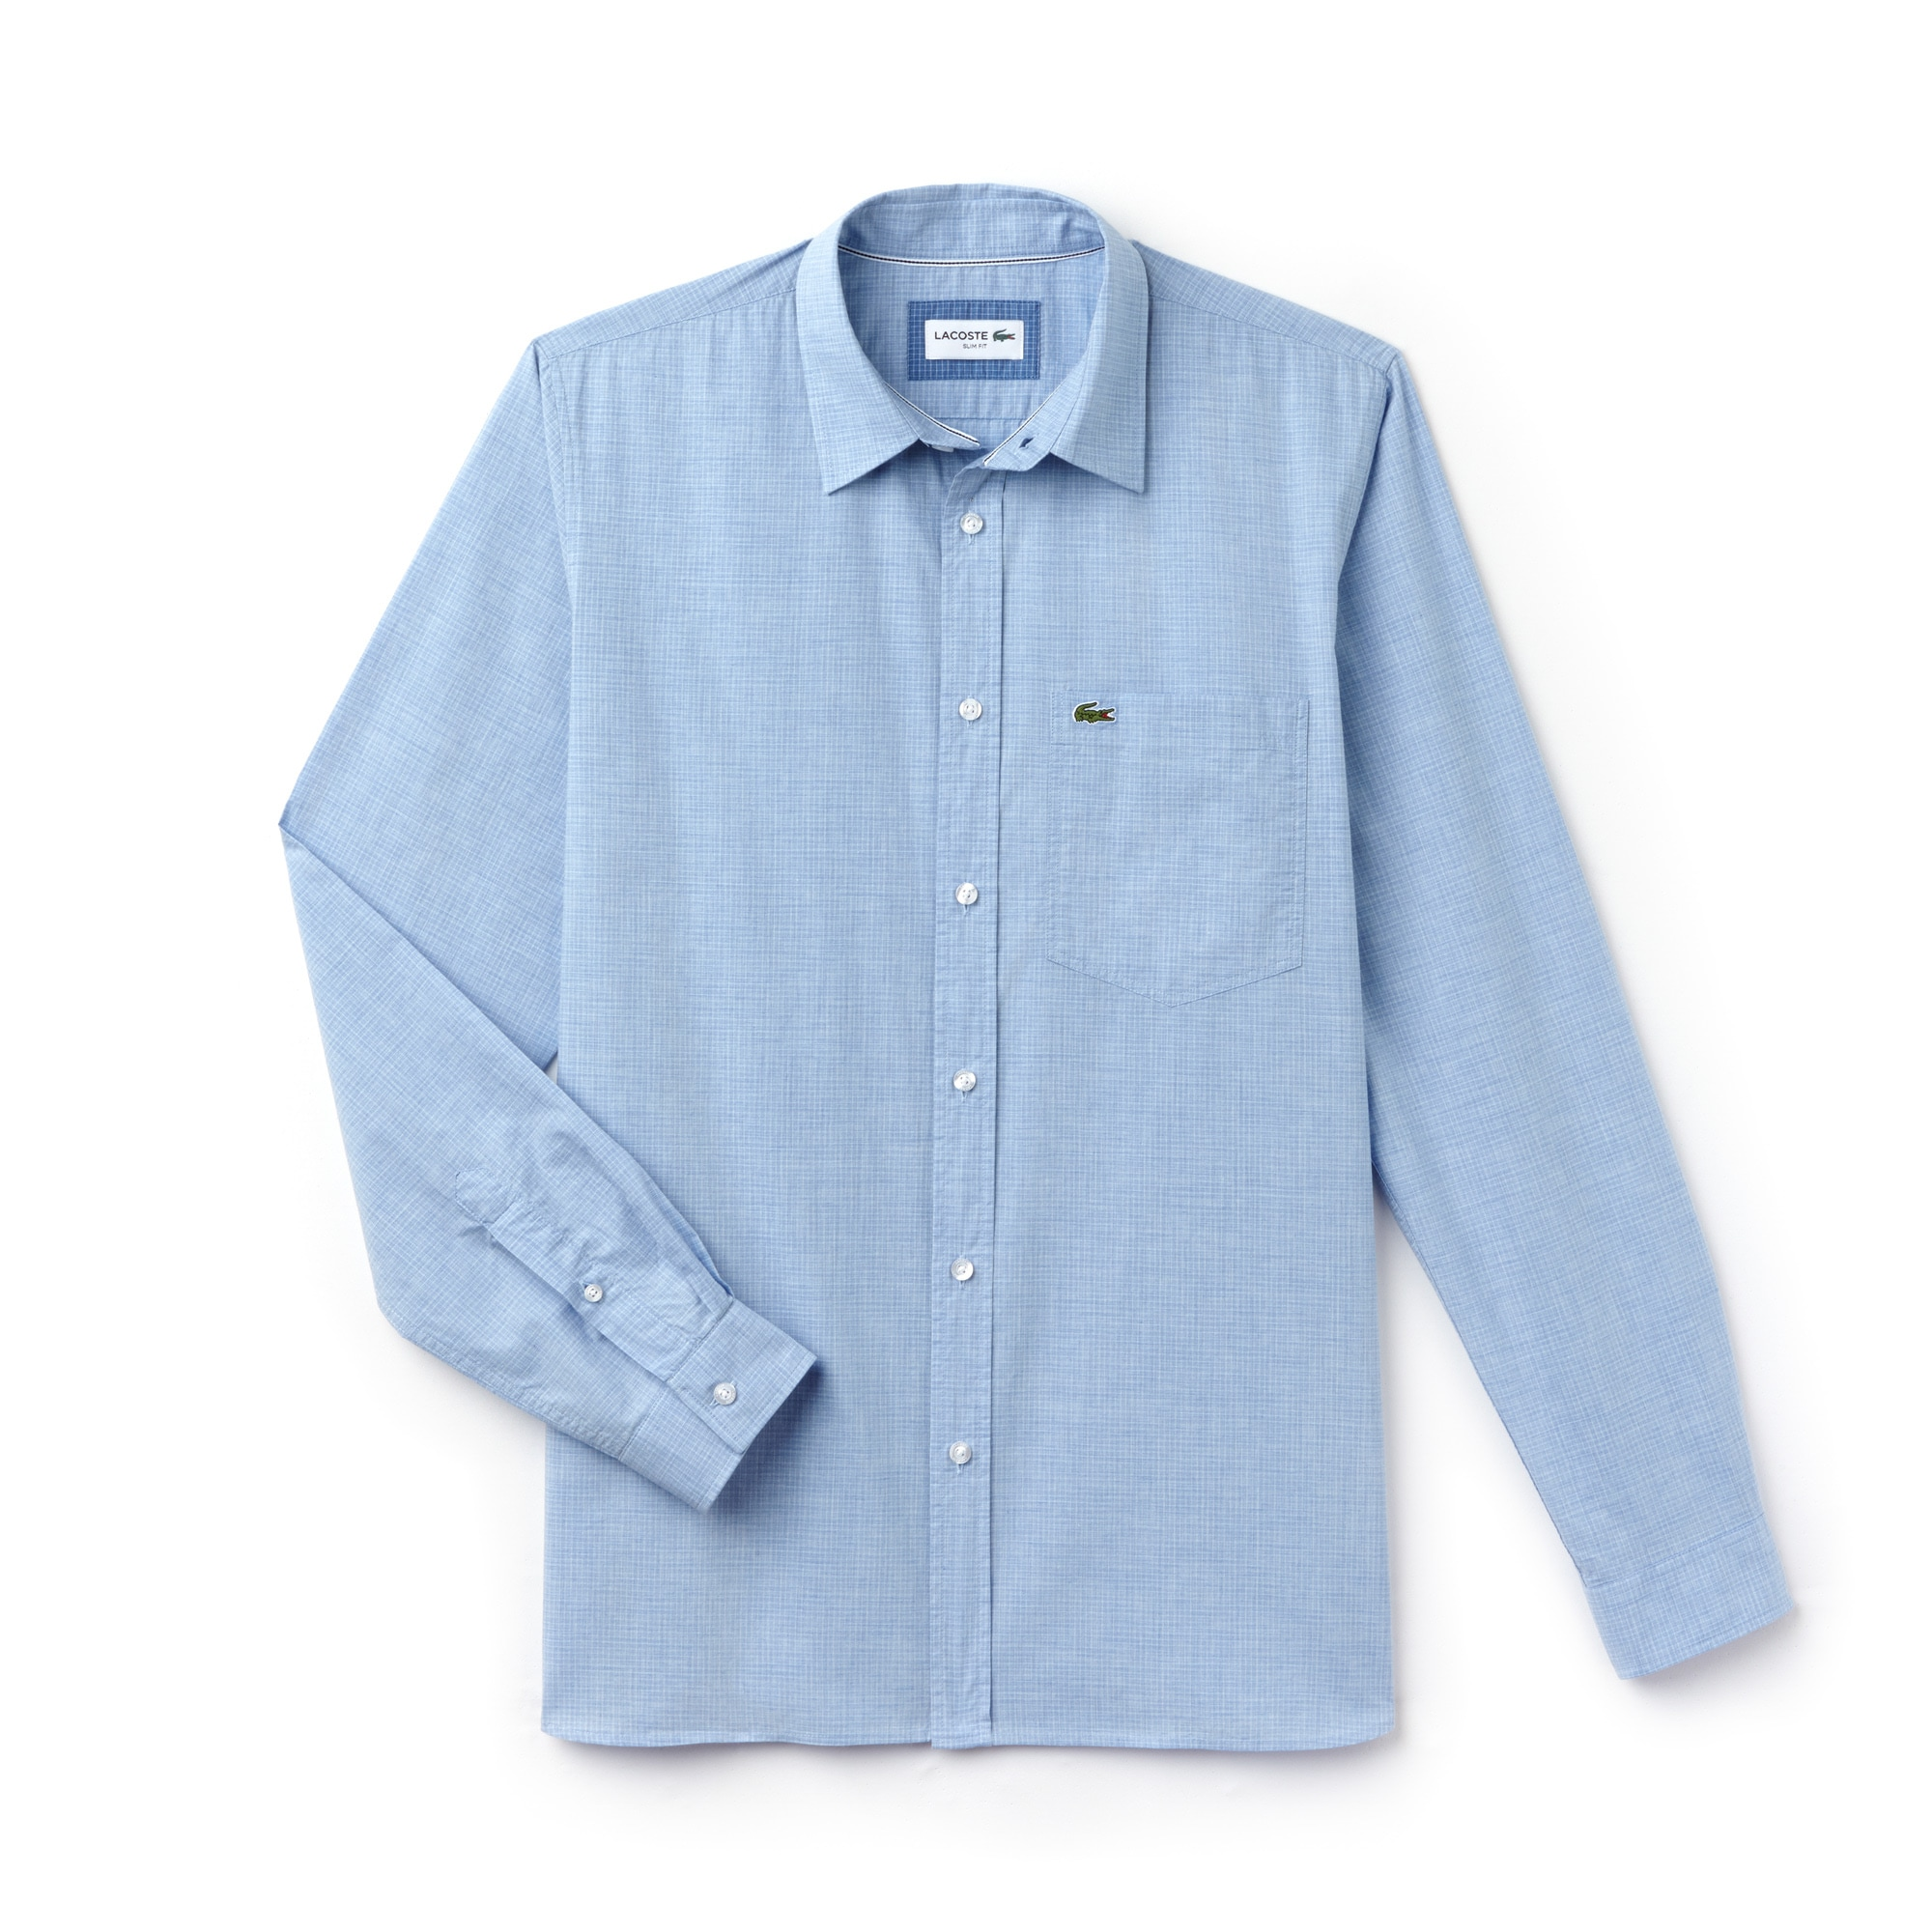 Men's Slim Fit Check Cotton Poplin Shirt